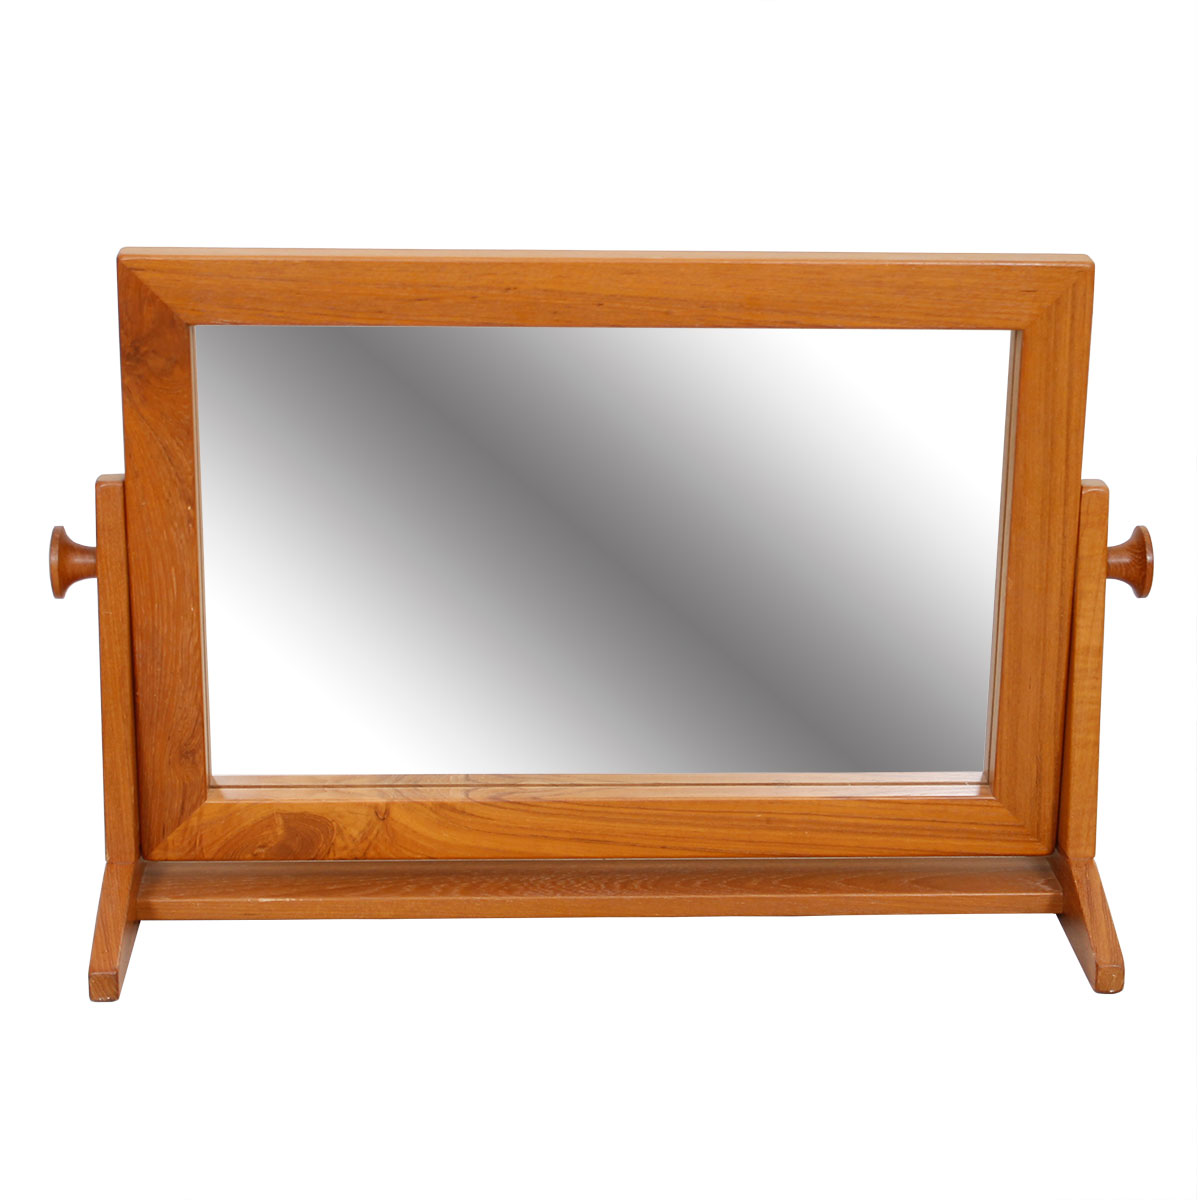 Compact Rectangular Danish Teak Cheval Table Mirror